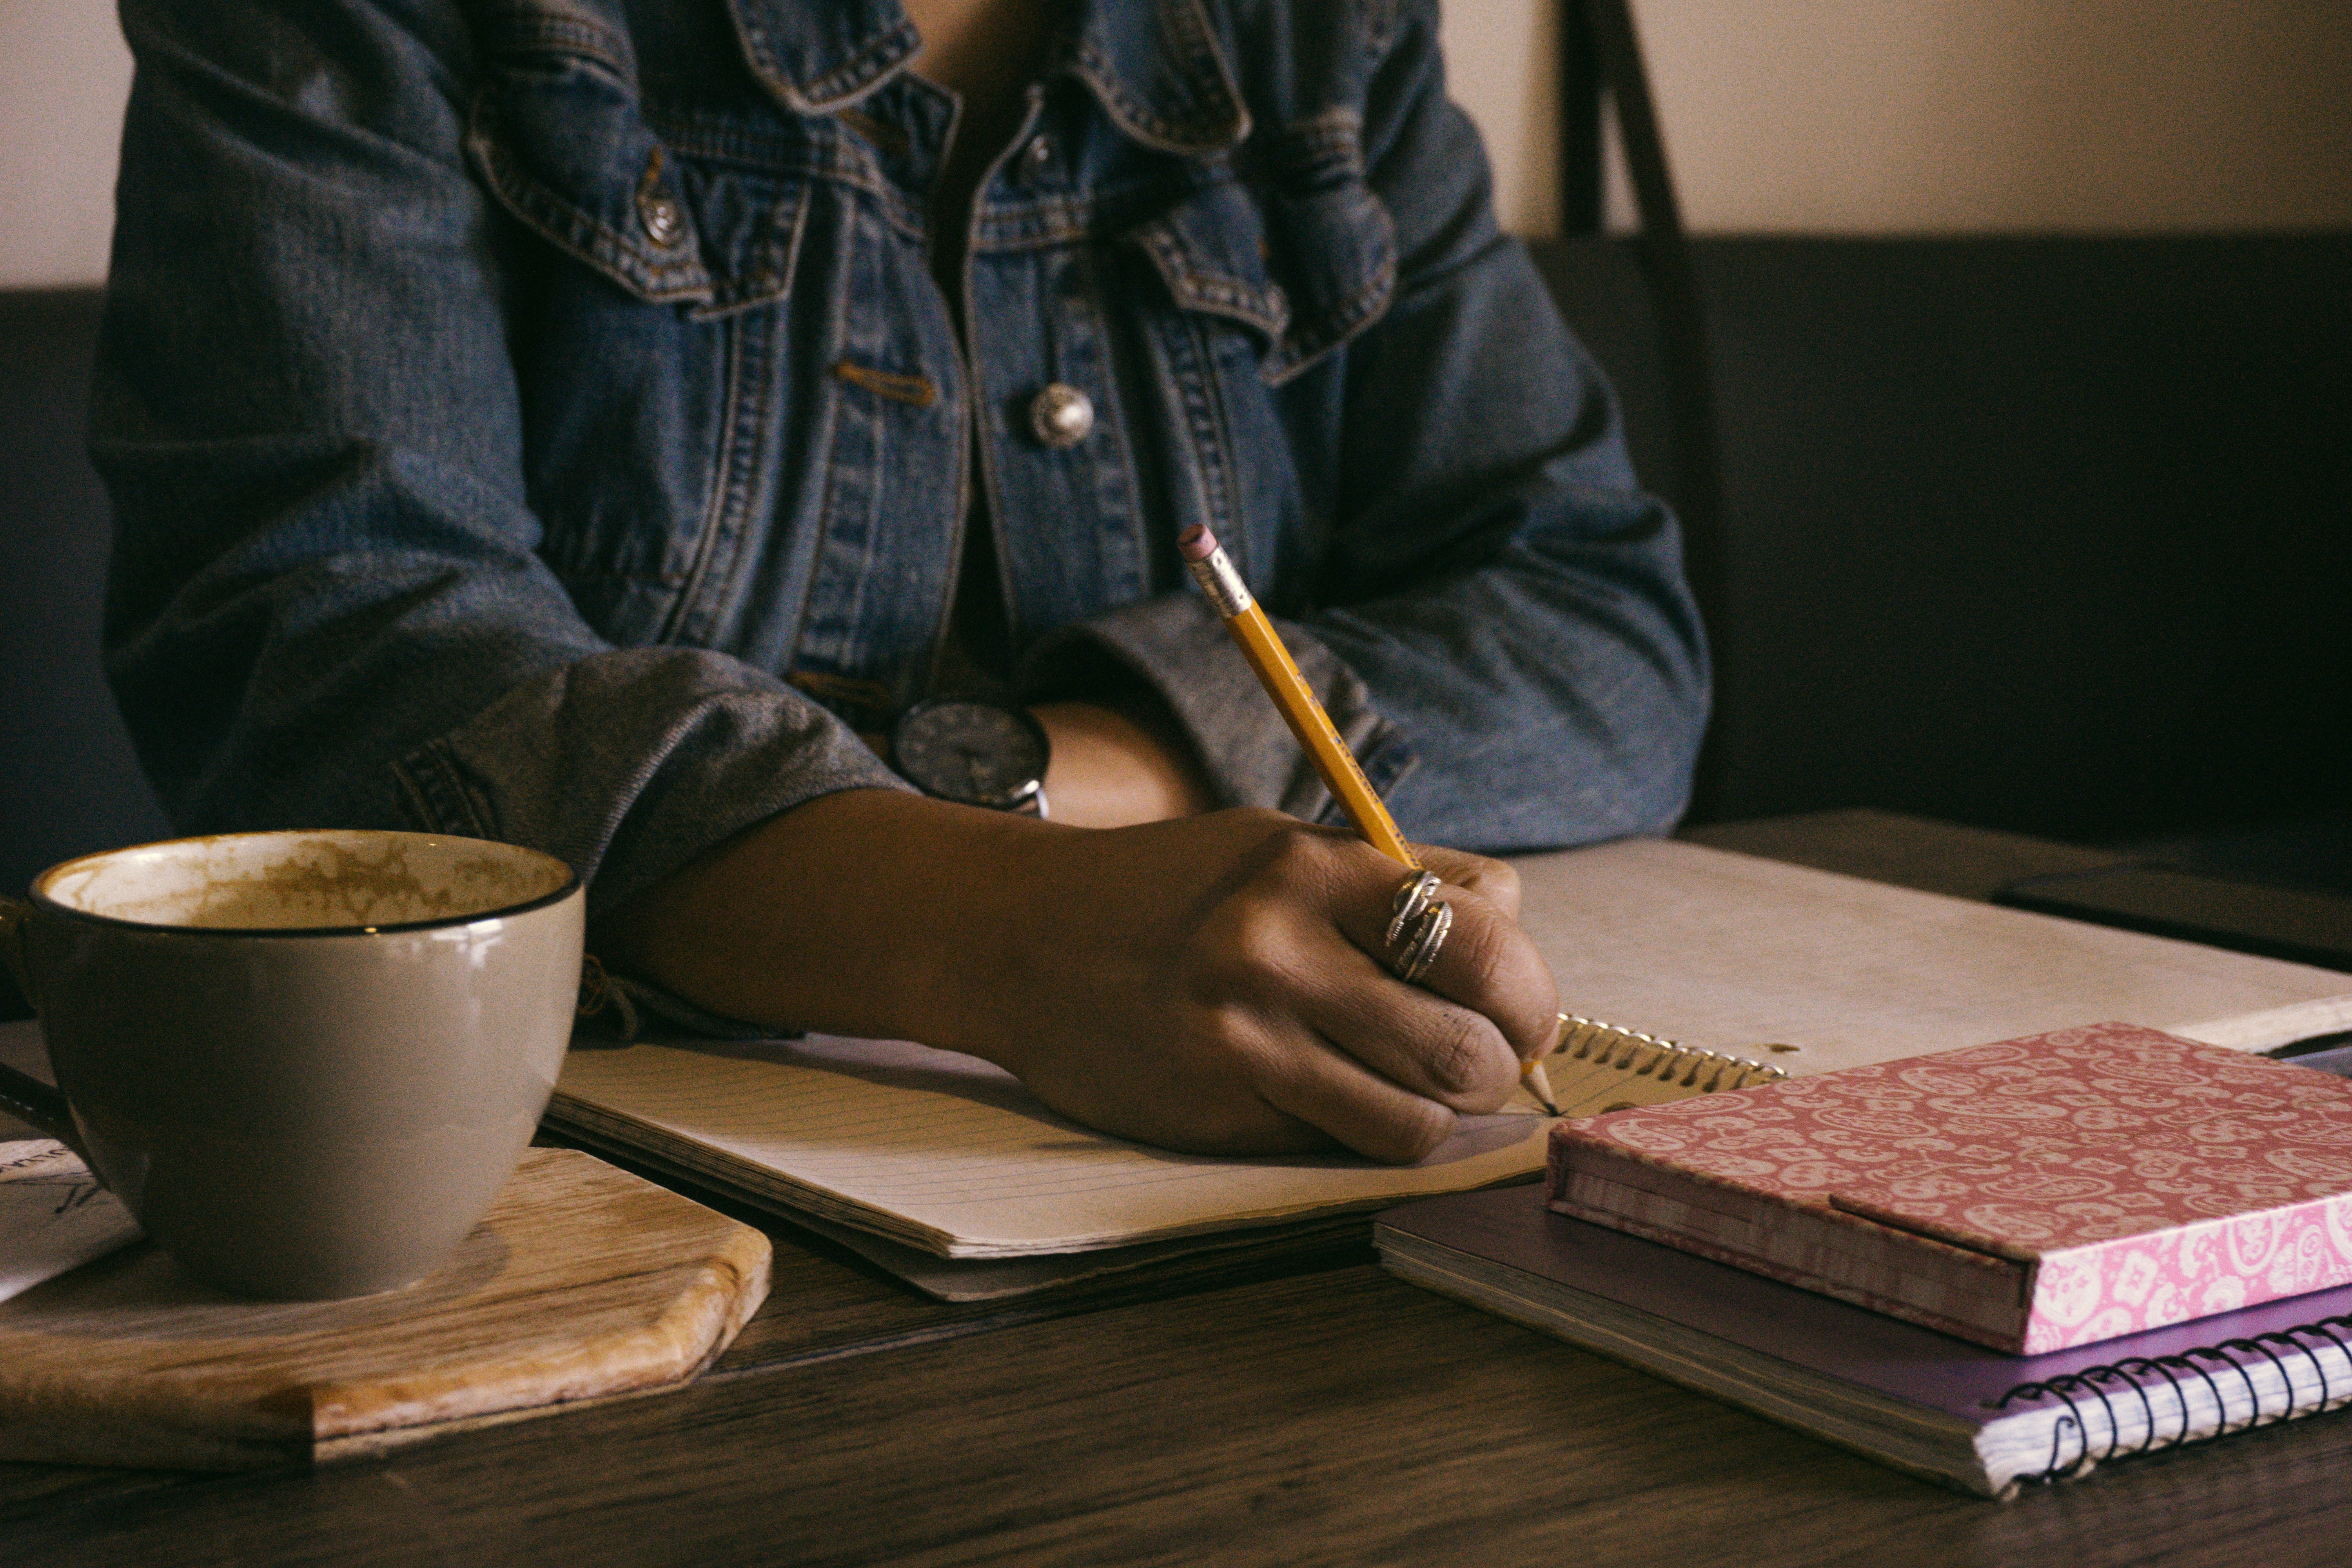 Woman in a dark denim jacket with a black watch on her left wrist, is writing with a pencil in a lined notebook. Next to the notebook is two notebook pilled up together. Next to her is a mug of her drink and a wooden coaster.